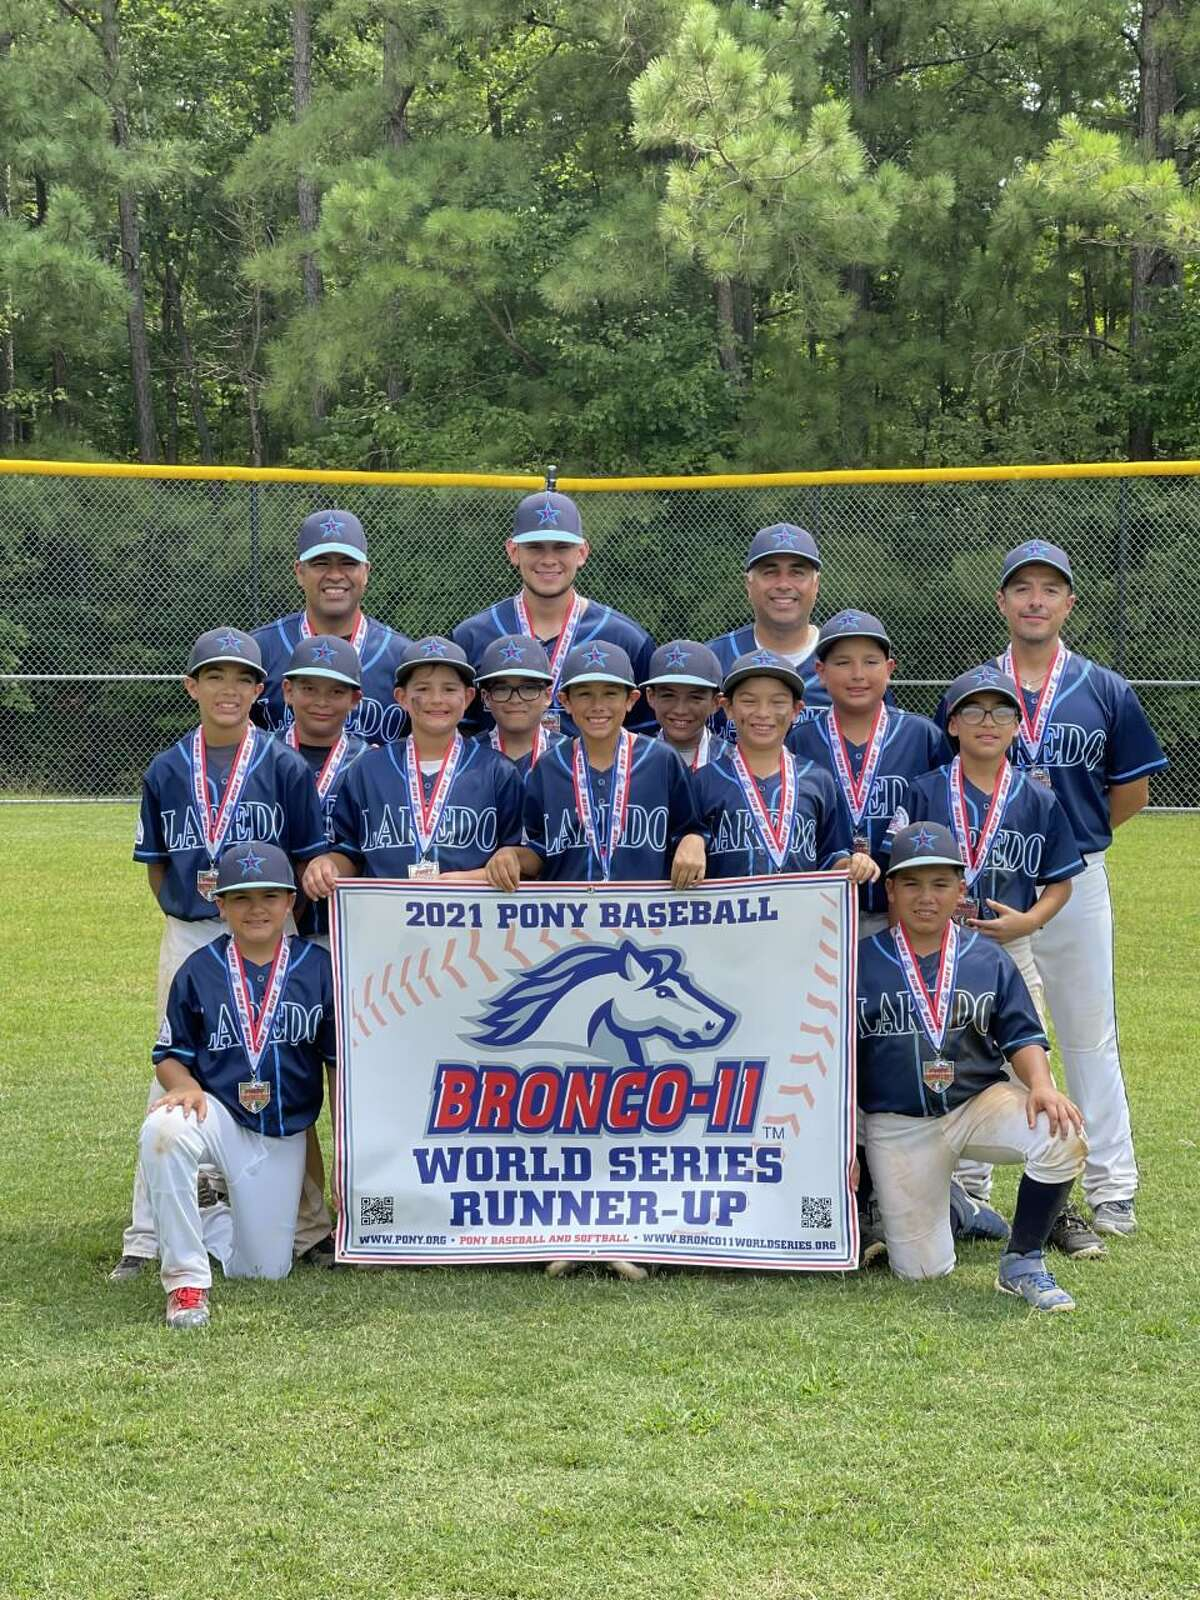 The Laredo PONY 11U team fell in the championship game Monday to finish as the runner up in the PONY Bronco 11U World Series in Chesterfield, Virginia.